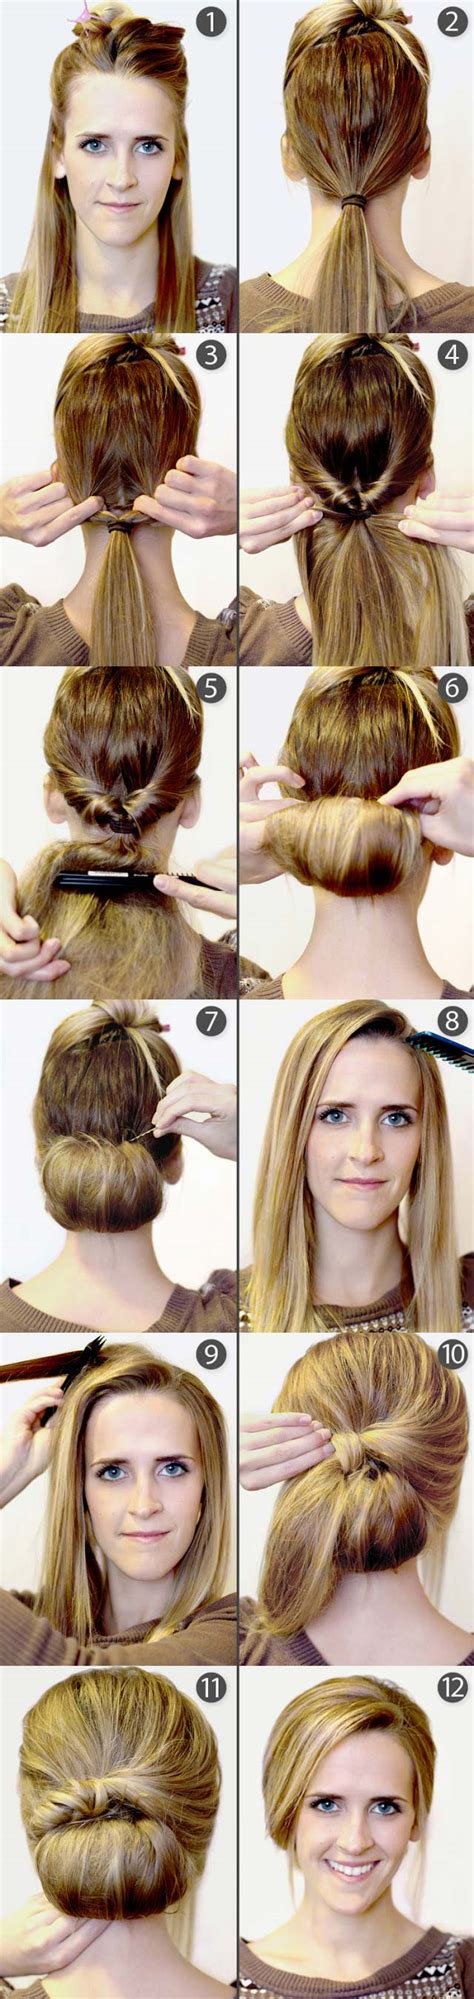 diy hairstyles step by step tumblr 9 pretty diy hairstyles with step by step tutorials